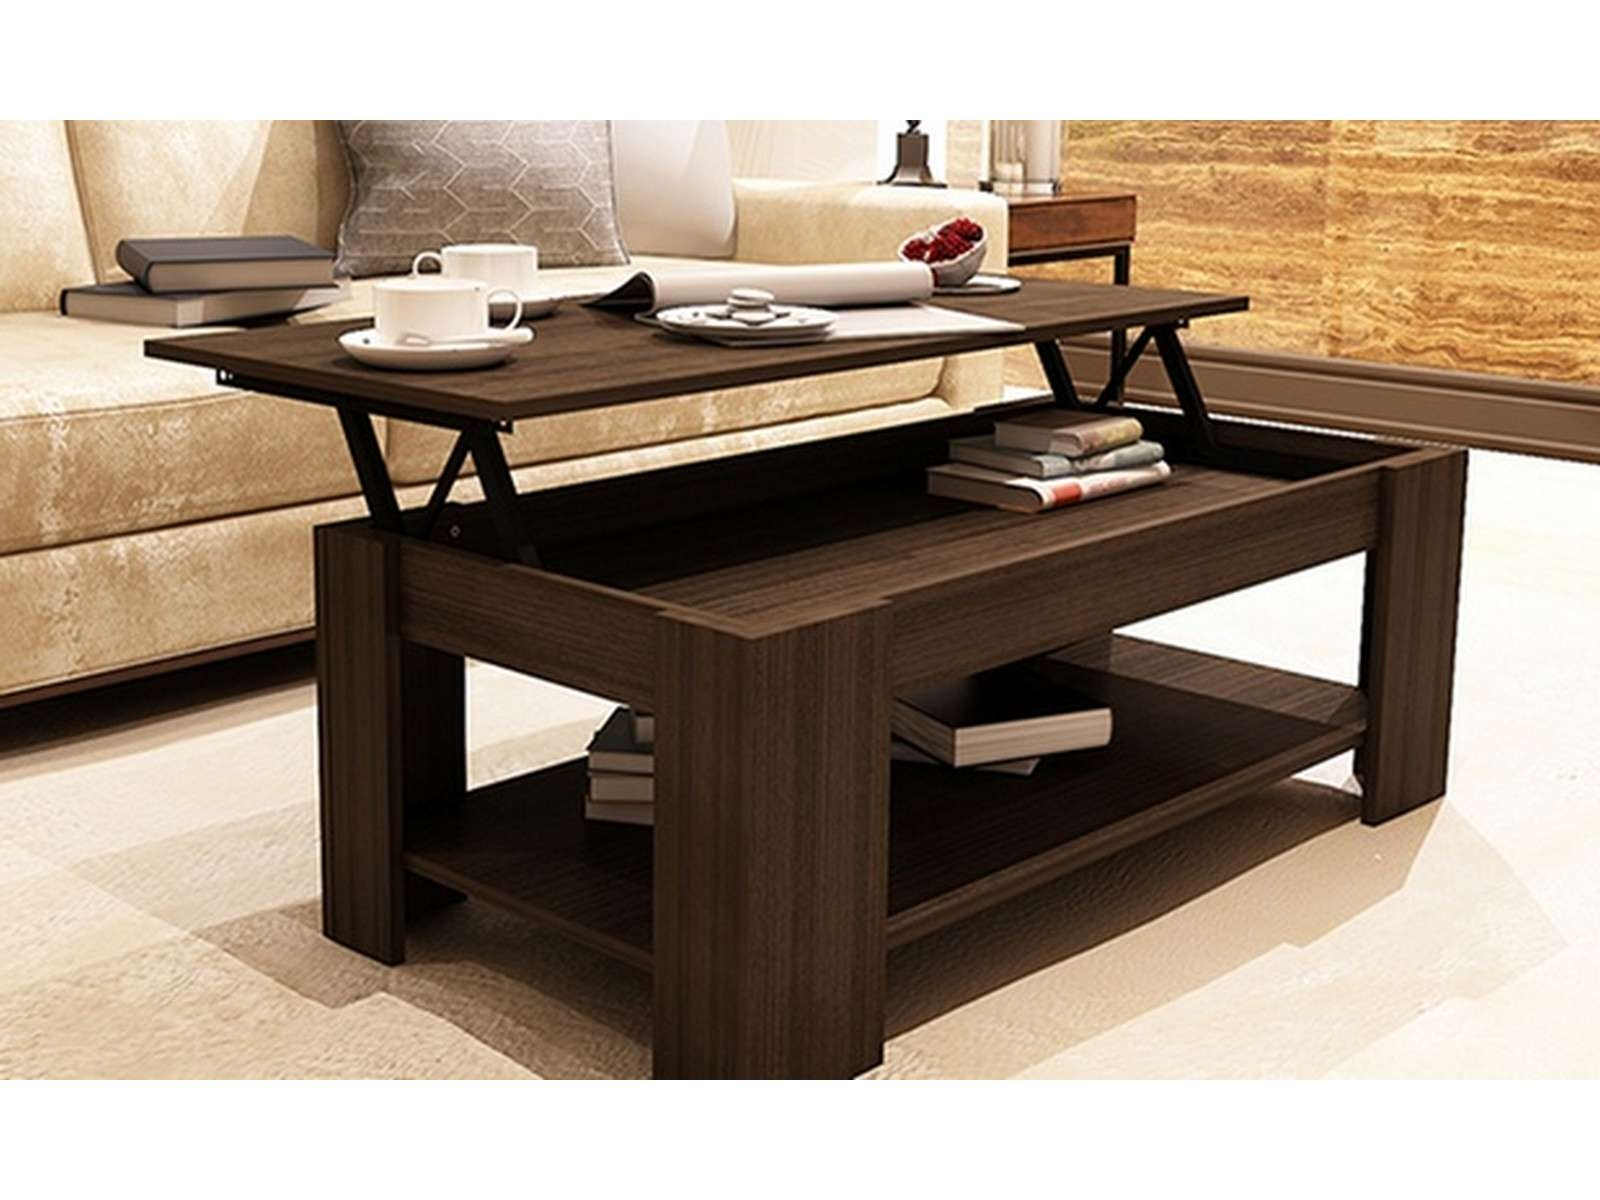 13 Ikea Glass Top Coffee Table With Drawers Gallery